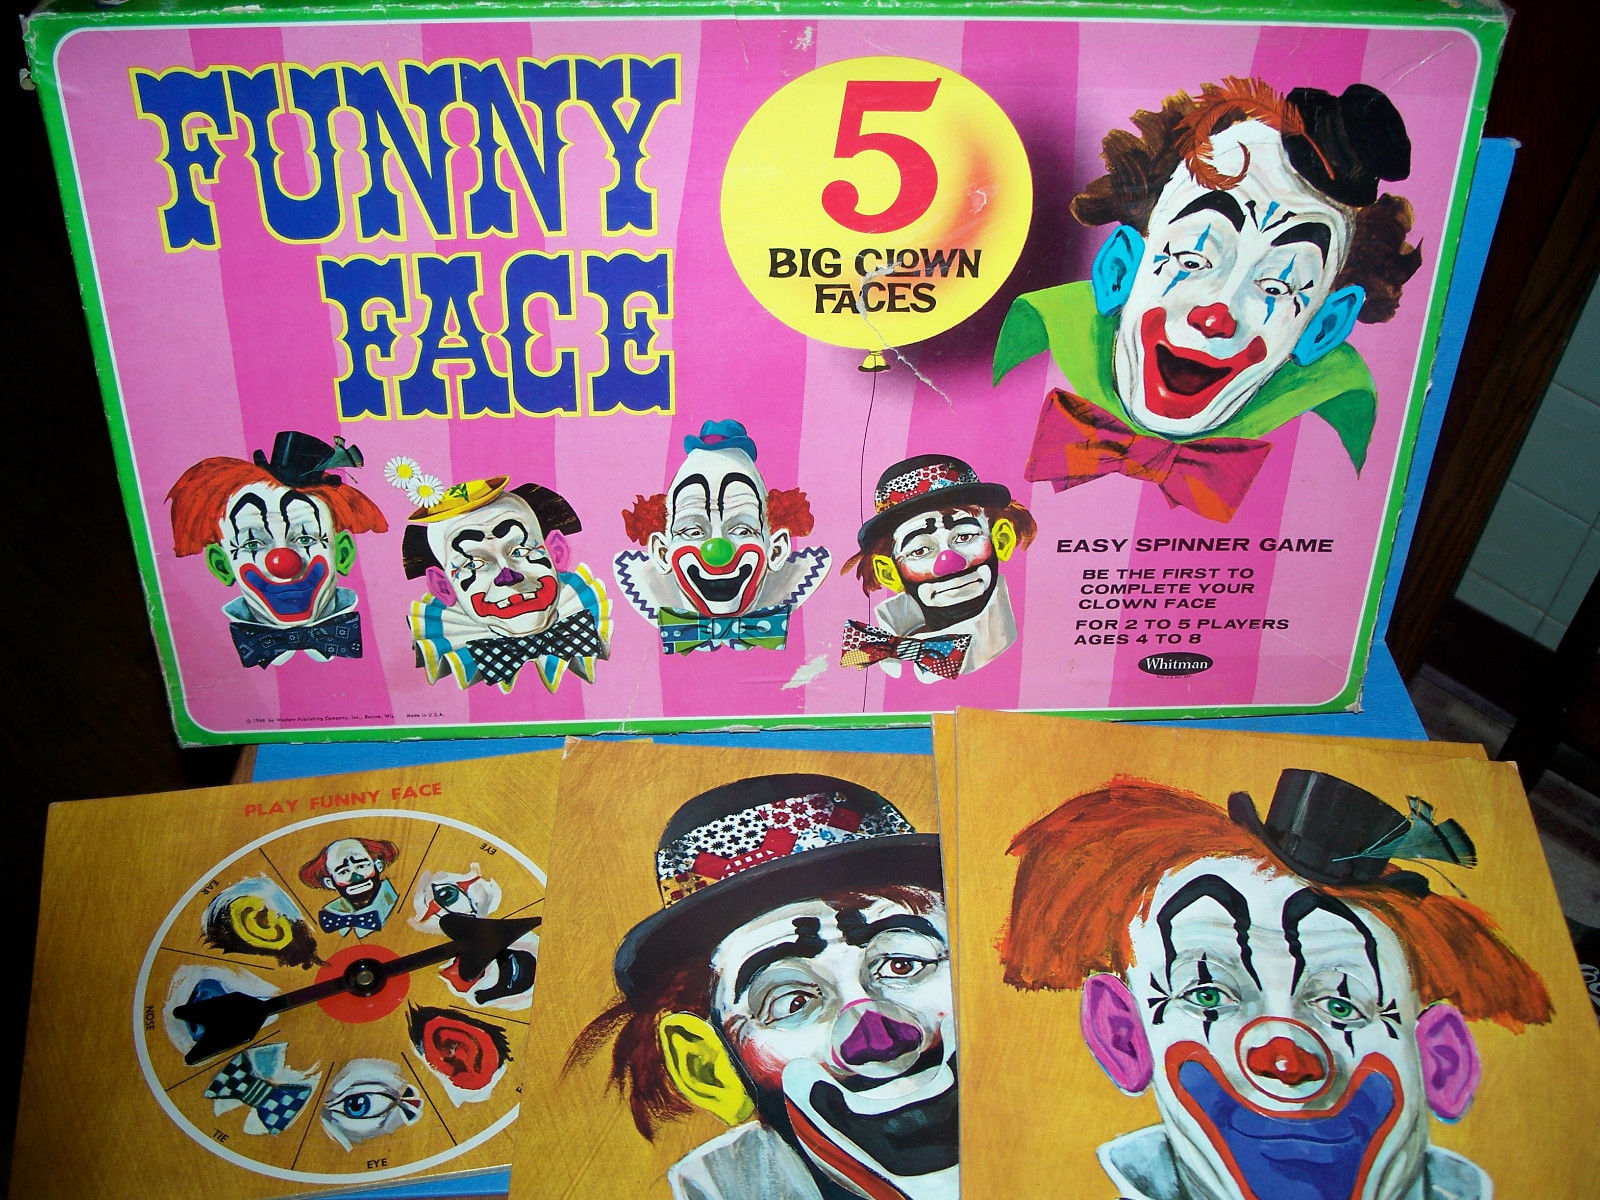 Museum of Curious Toys & Games: The (Not So) Funny Face Board Game